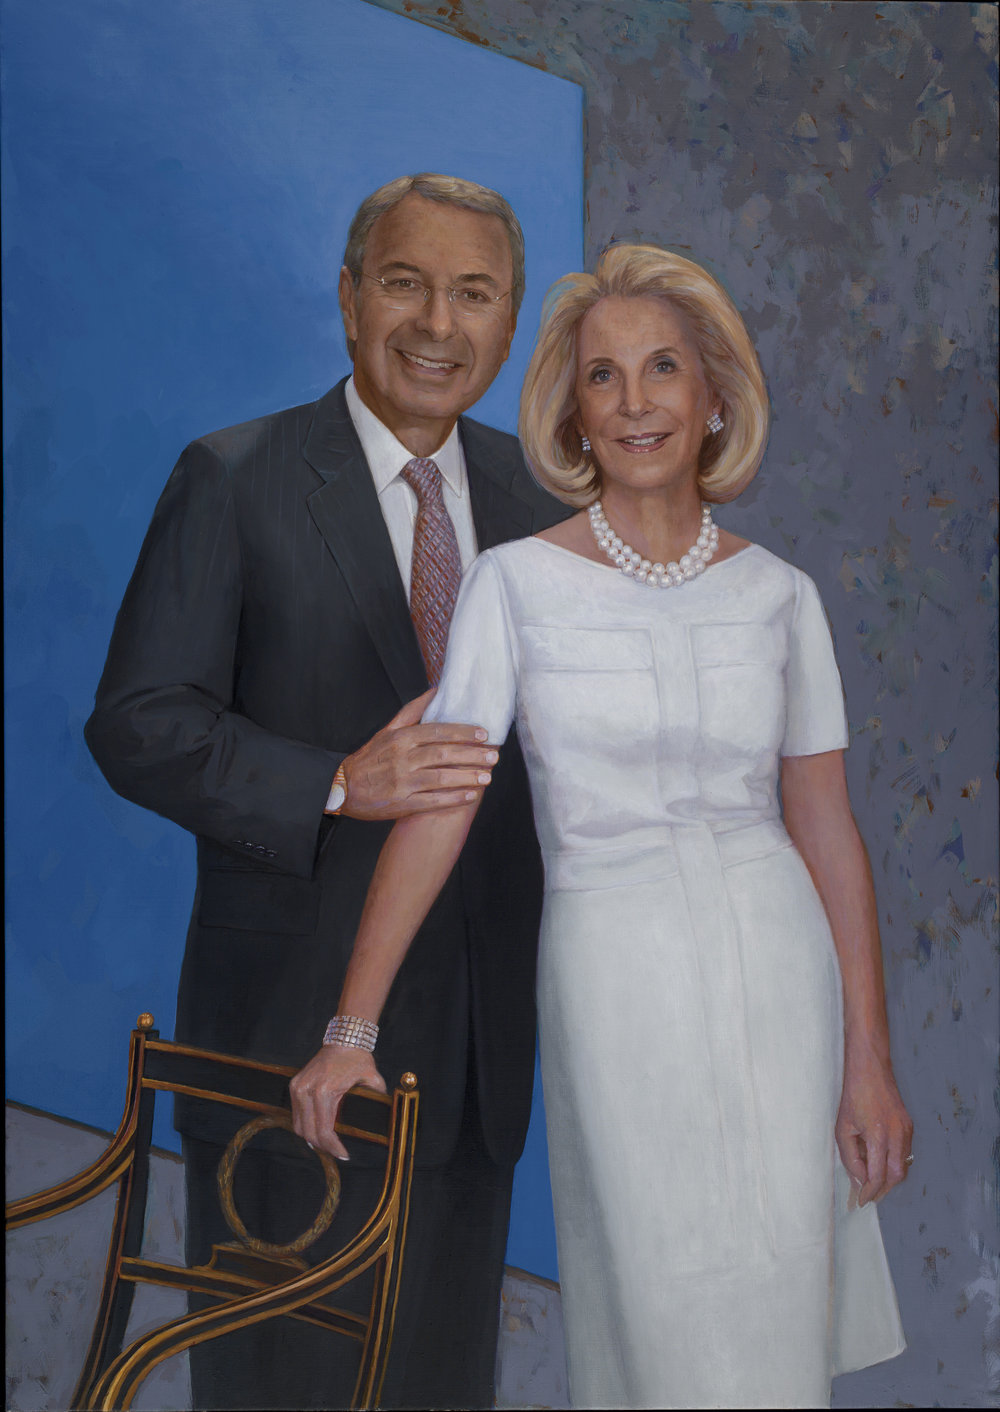 Portrait painting of William and Phyllis Mack, NYC. (background image, Ellsworth Kelly, is part of an their extraordinary Modern and Contemporary Art Collection.)